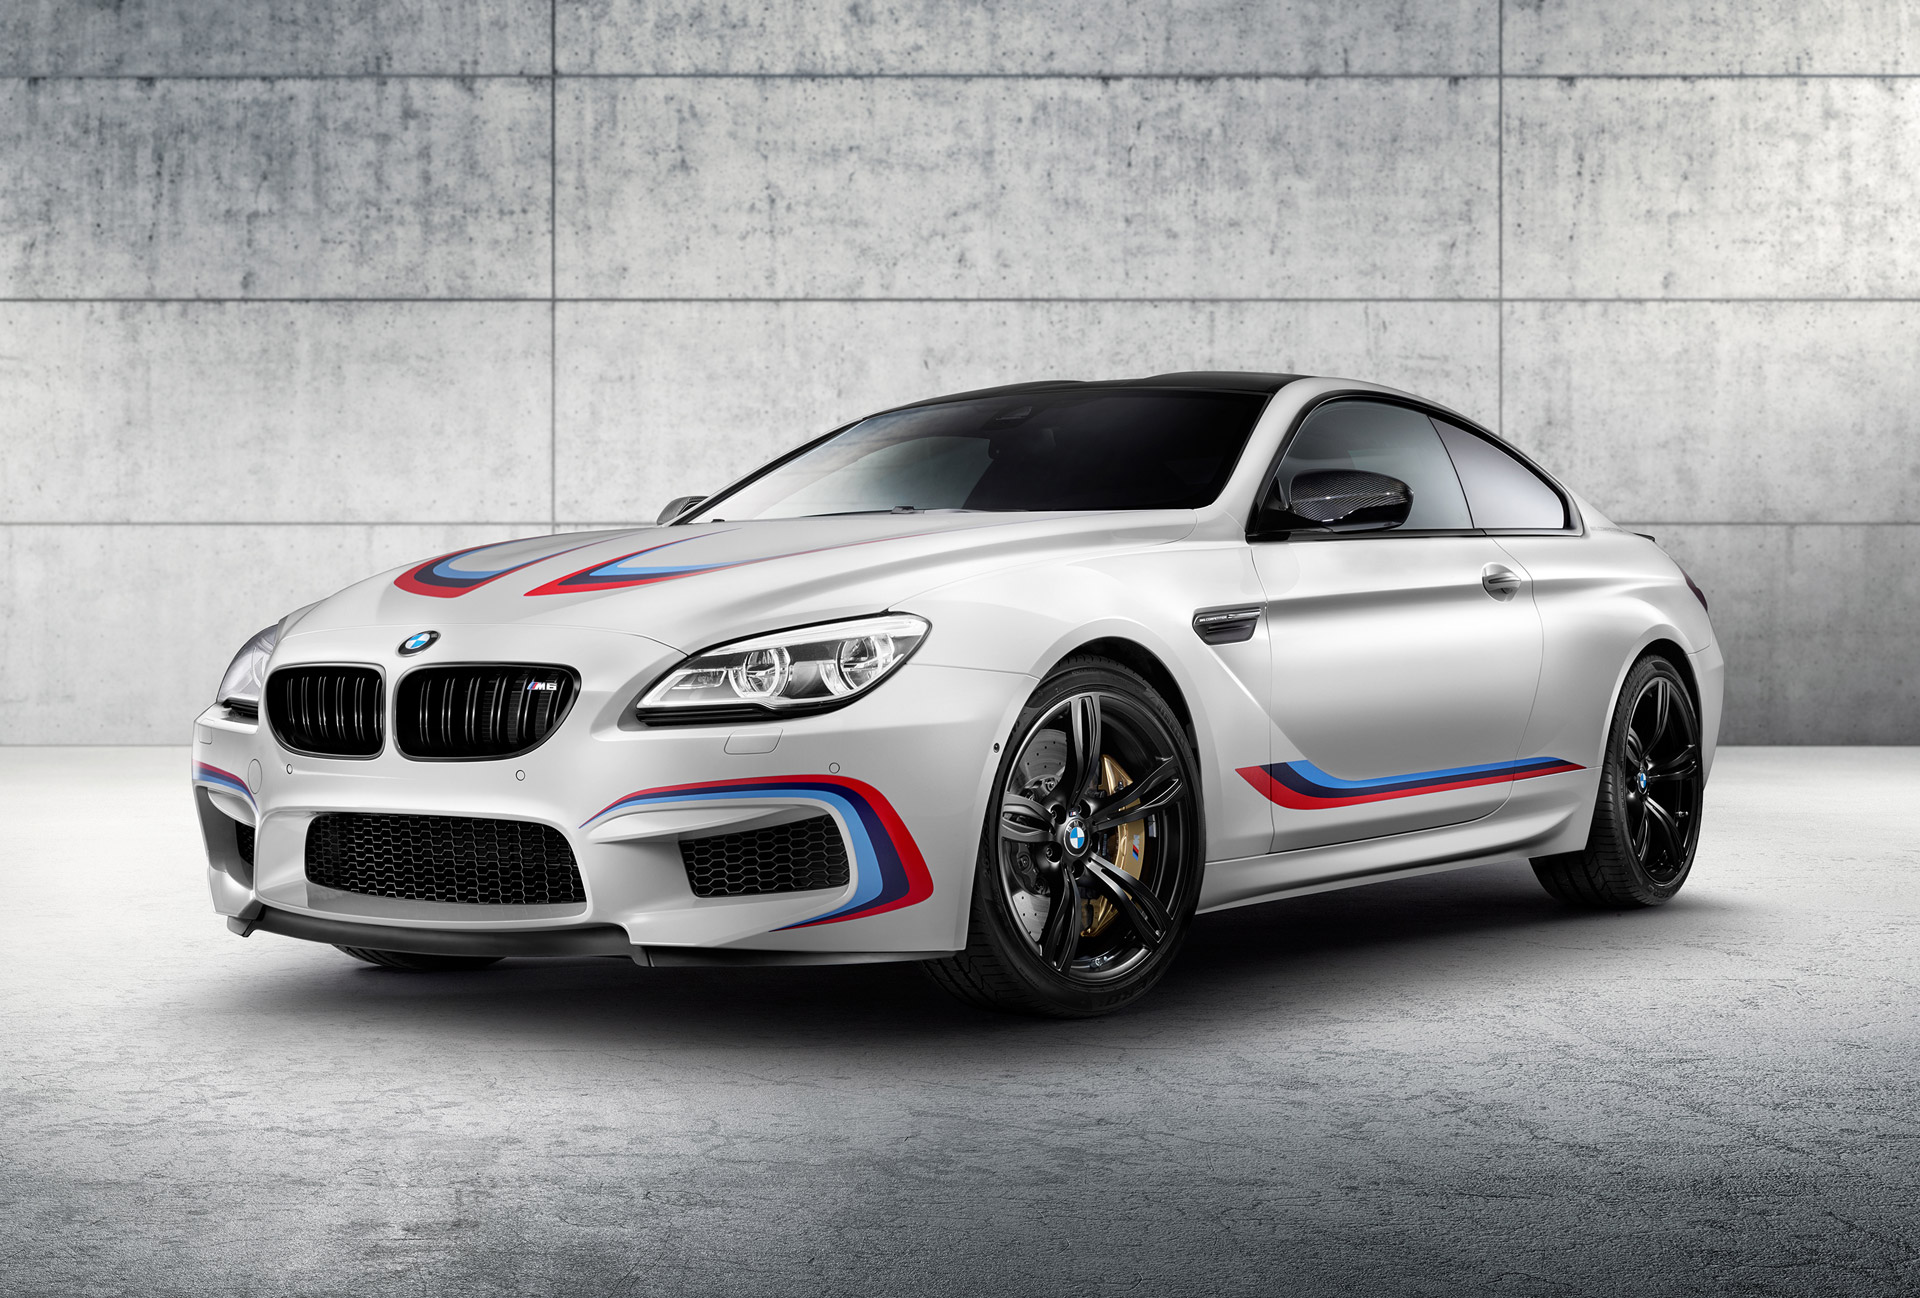 2016 bmw m6 competition package cranked up to 600 hp. Black Bedroom Furniture Sets. Home Design Ideas